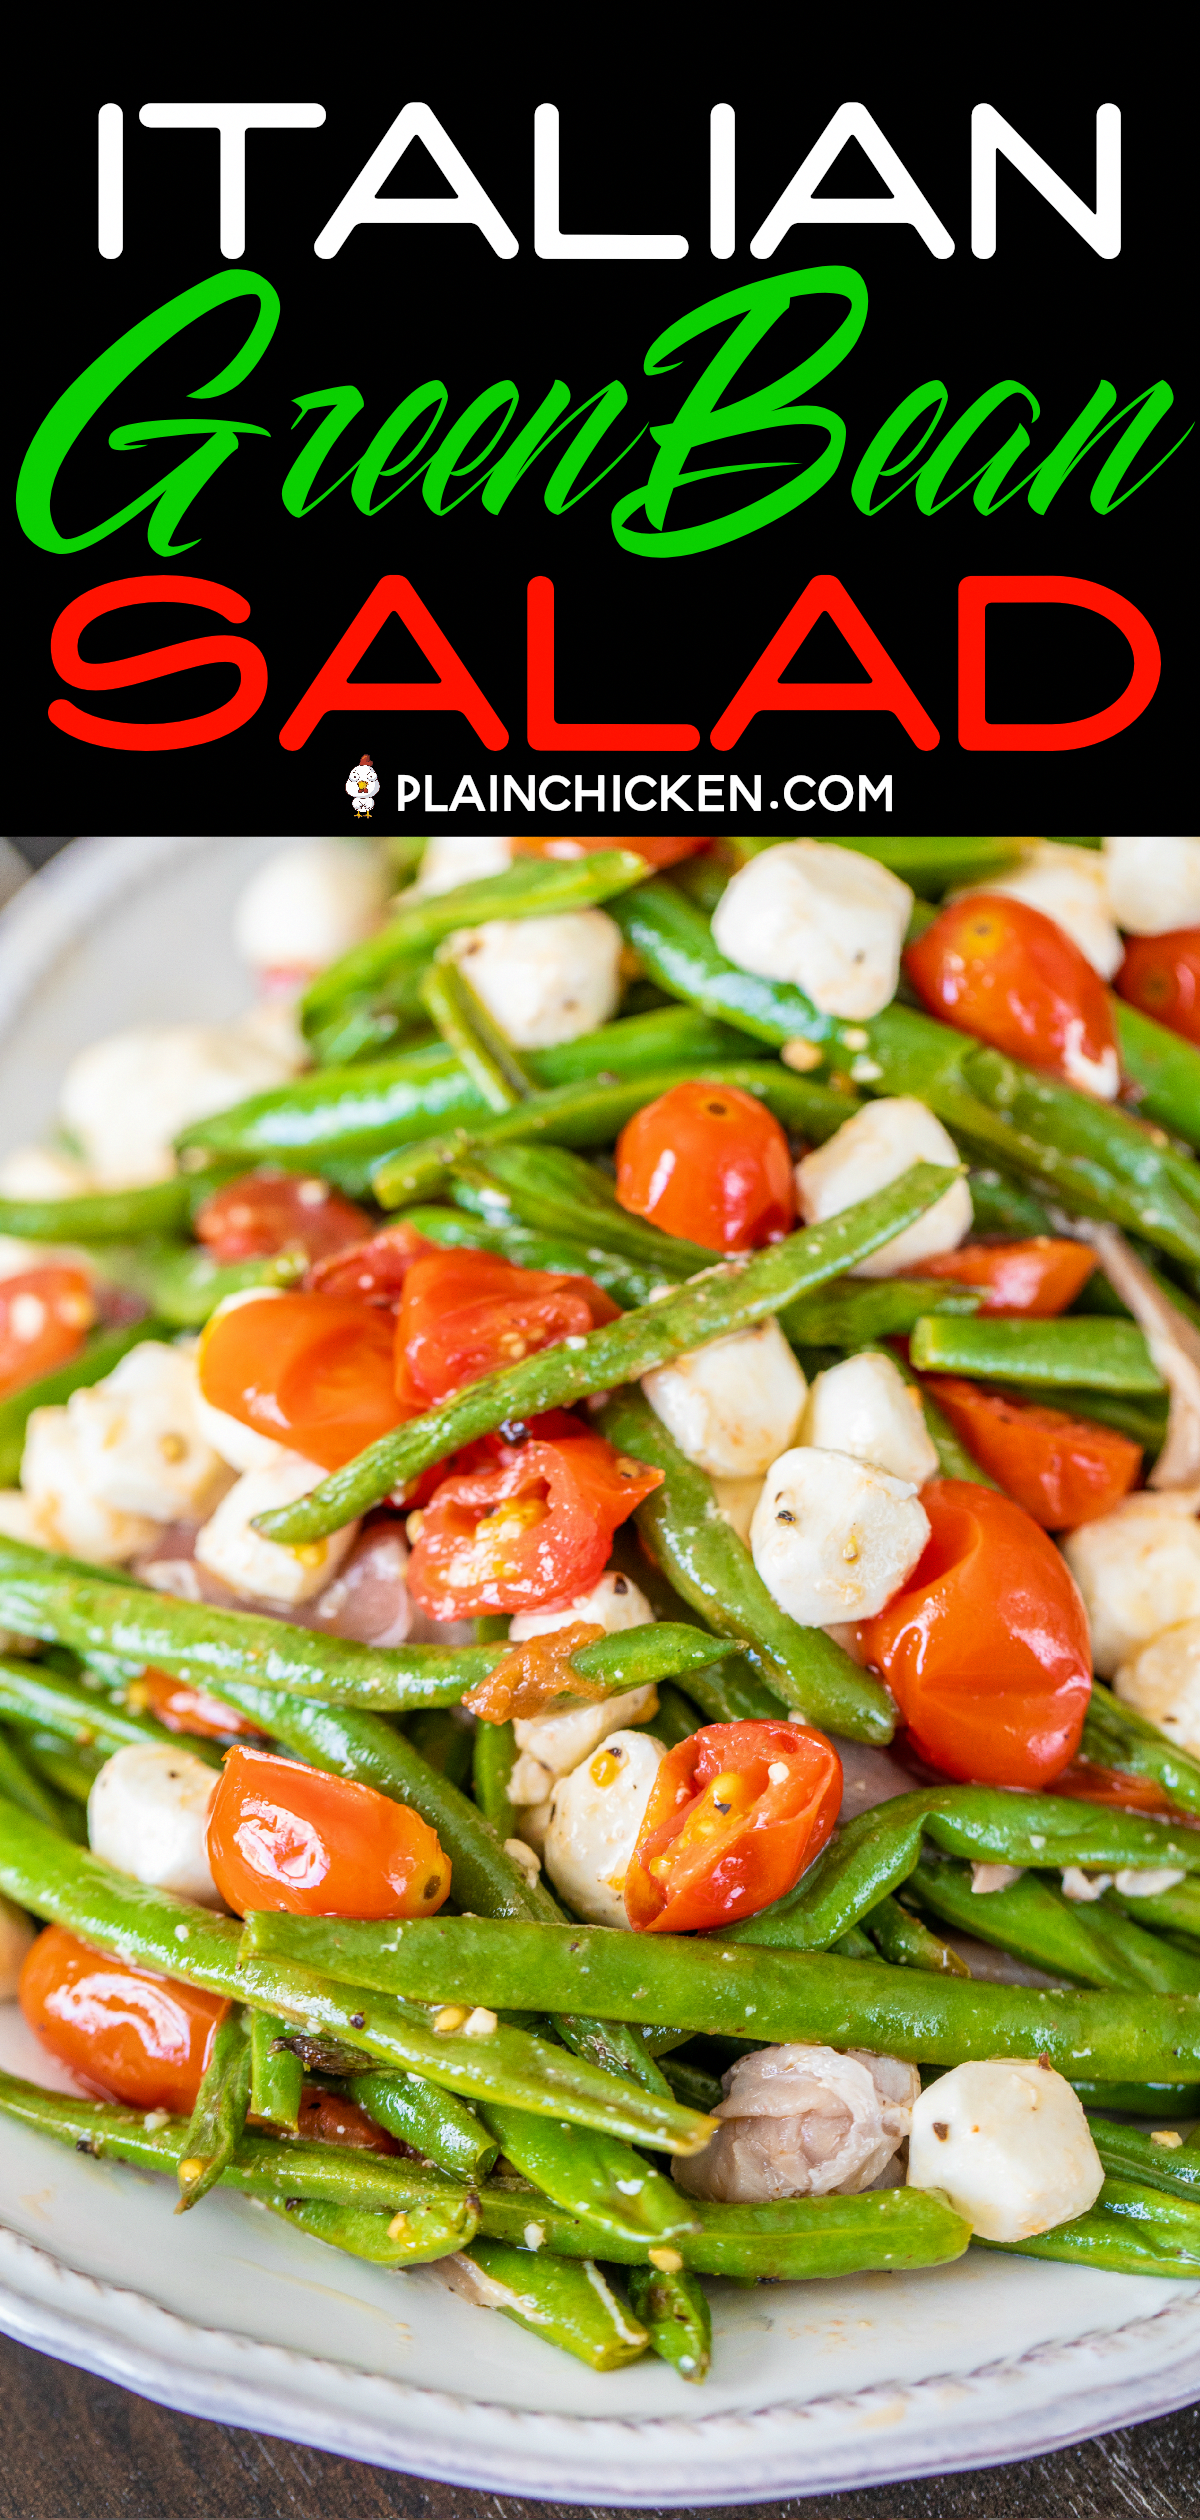 Italian Green Bean Salad - quick and delicious side dish! Green beans, tomatoes, garlic, olive oil, prosciutto, and mozzarella tossed in lemon juice and olive oil. Can serve hot or cold. Great for potlucks and cookouts. Can make in advance and refrigerate until ready to serve. Everyone always asks for the recipe! YUM! #salad #greenbeans #vegetable #dishesvegetable